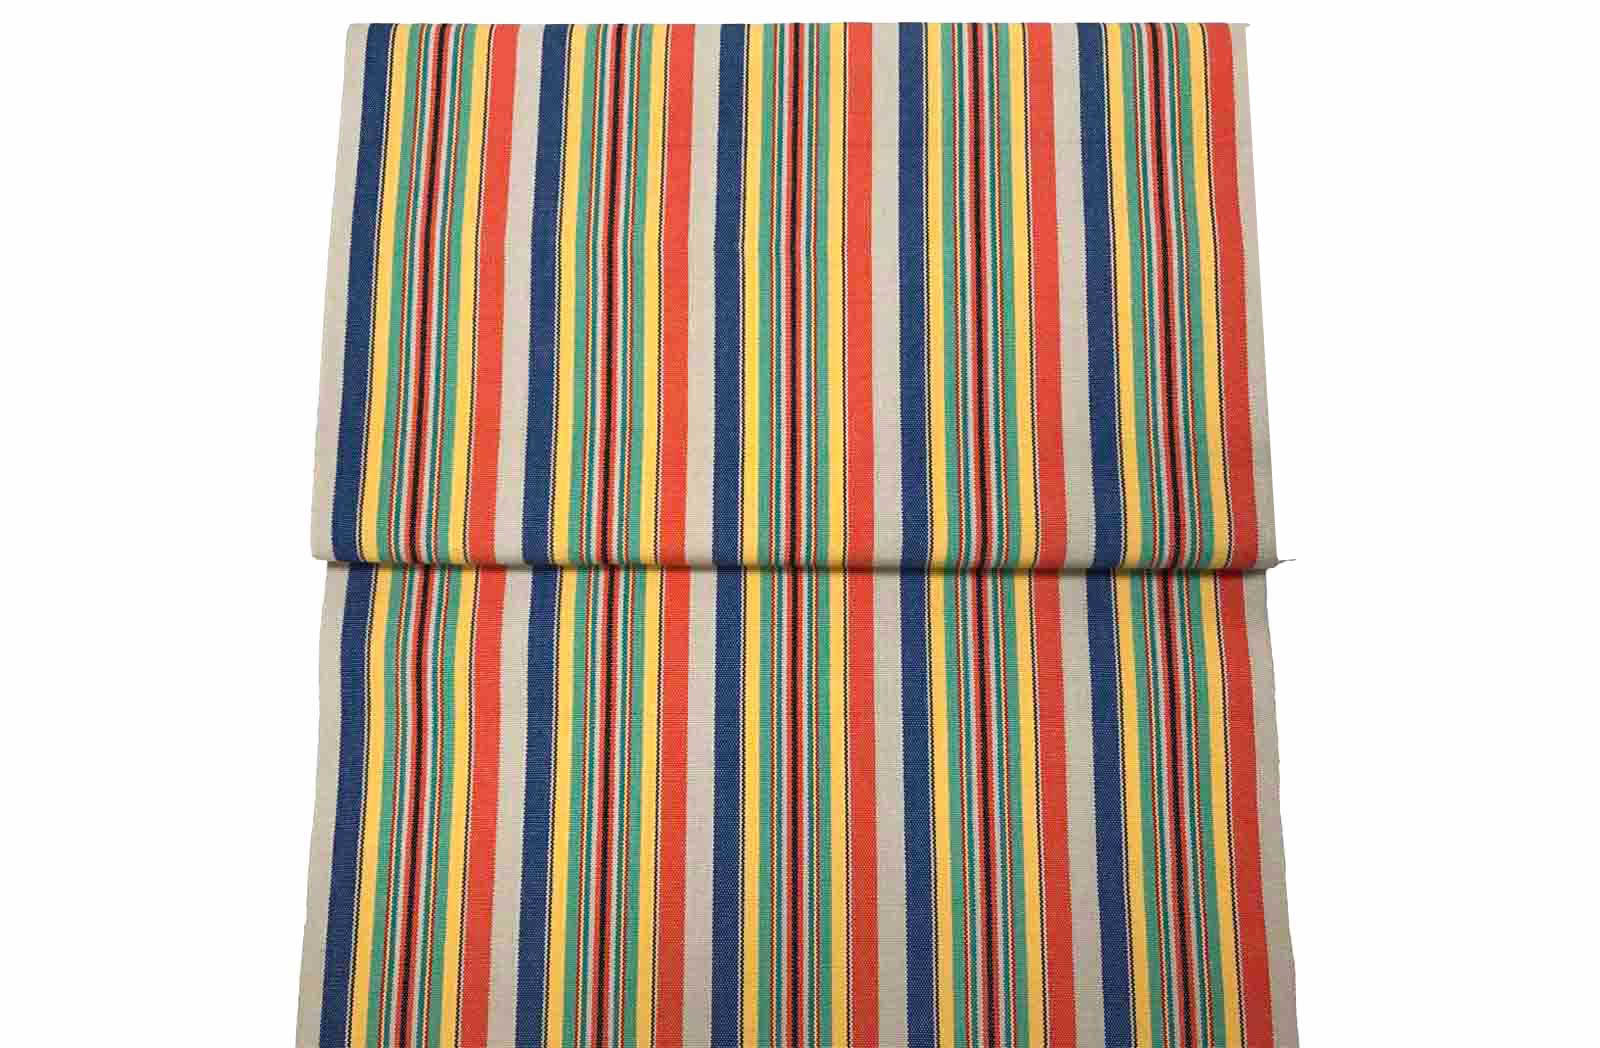 Replacement Deck Chair Slings dark blue, beige, orange